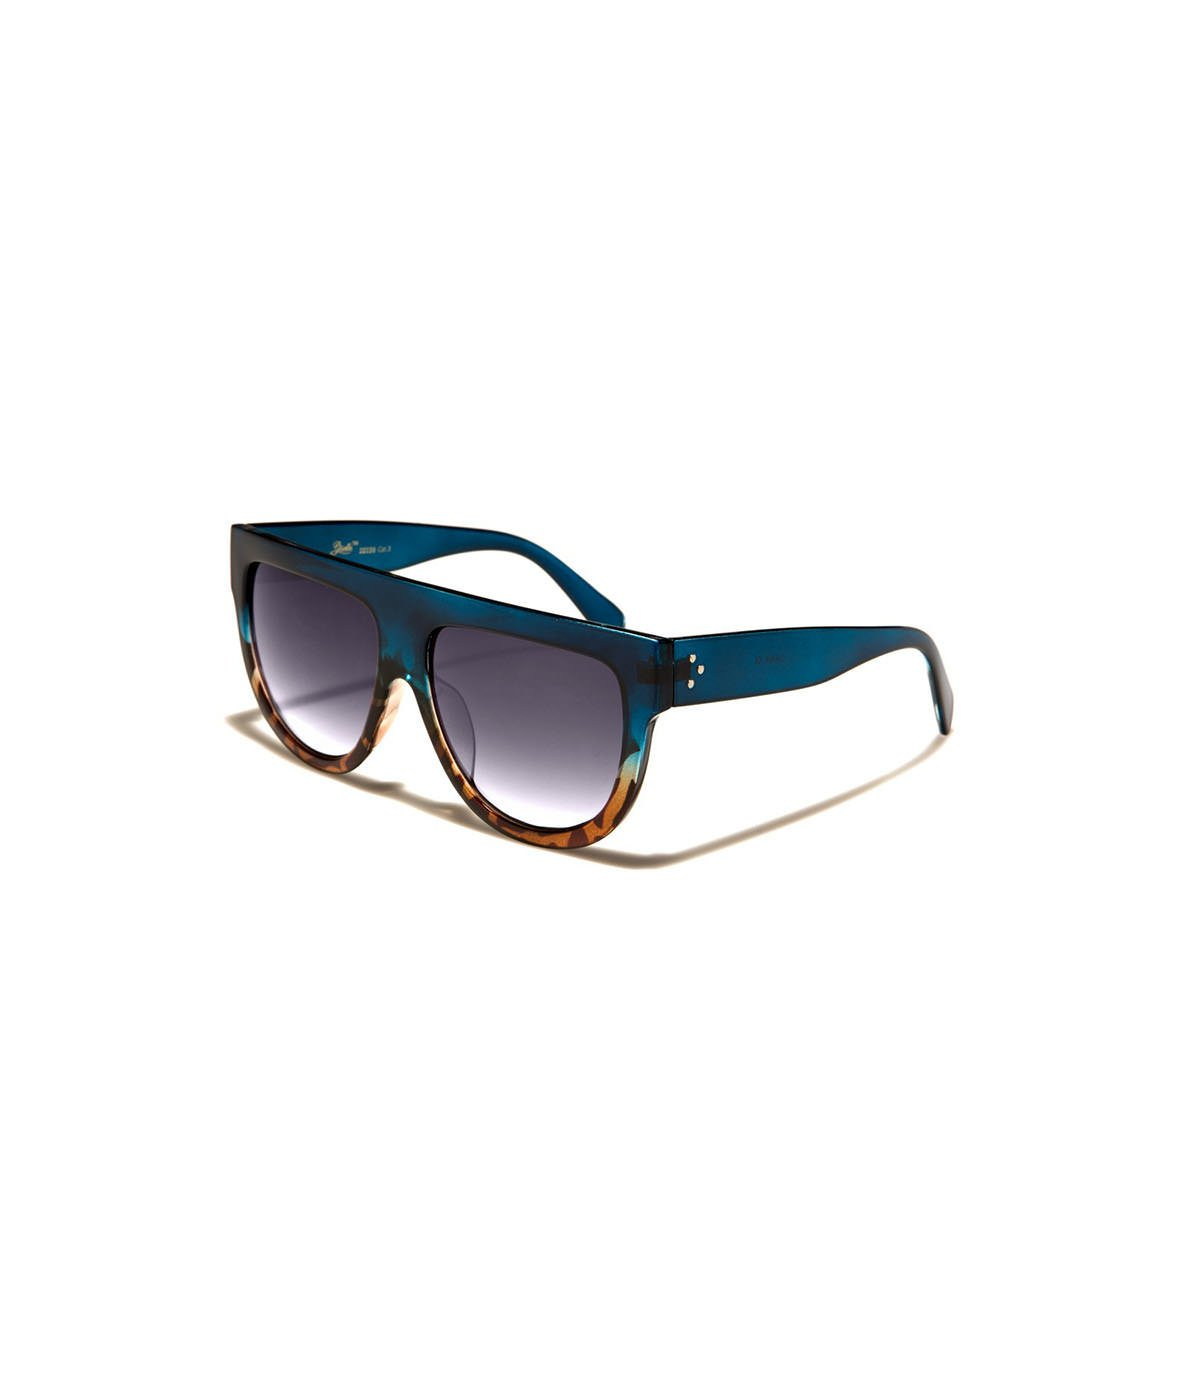 Nayked Apparel Flat-Top Oversized Sunglasses, Teal/Tortoise